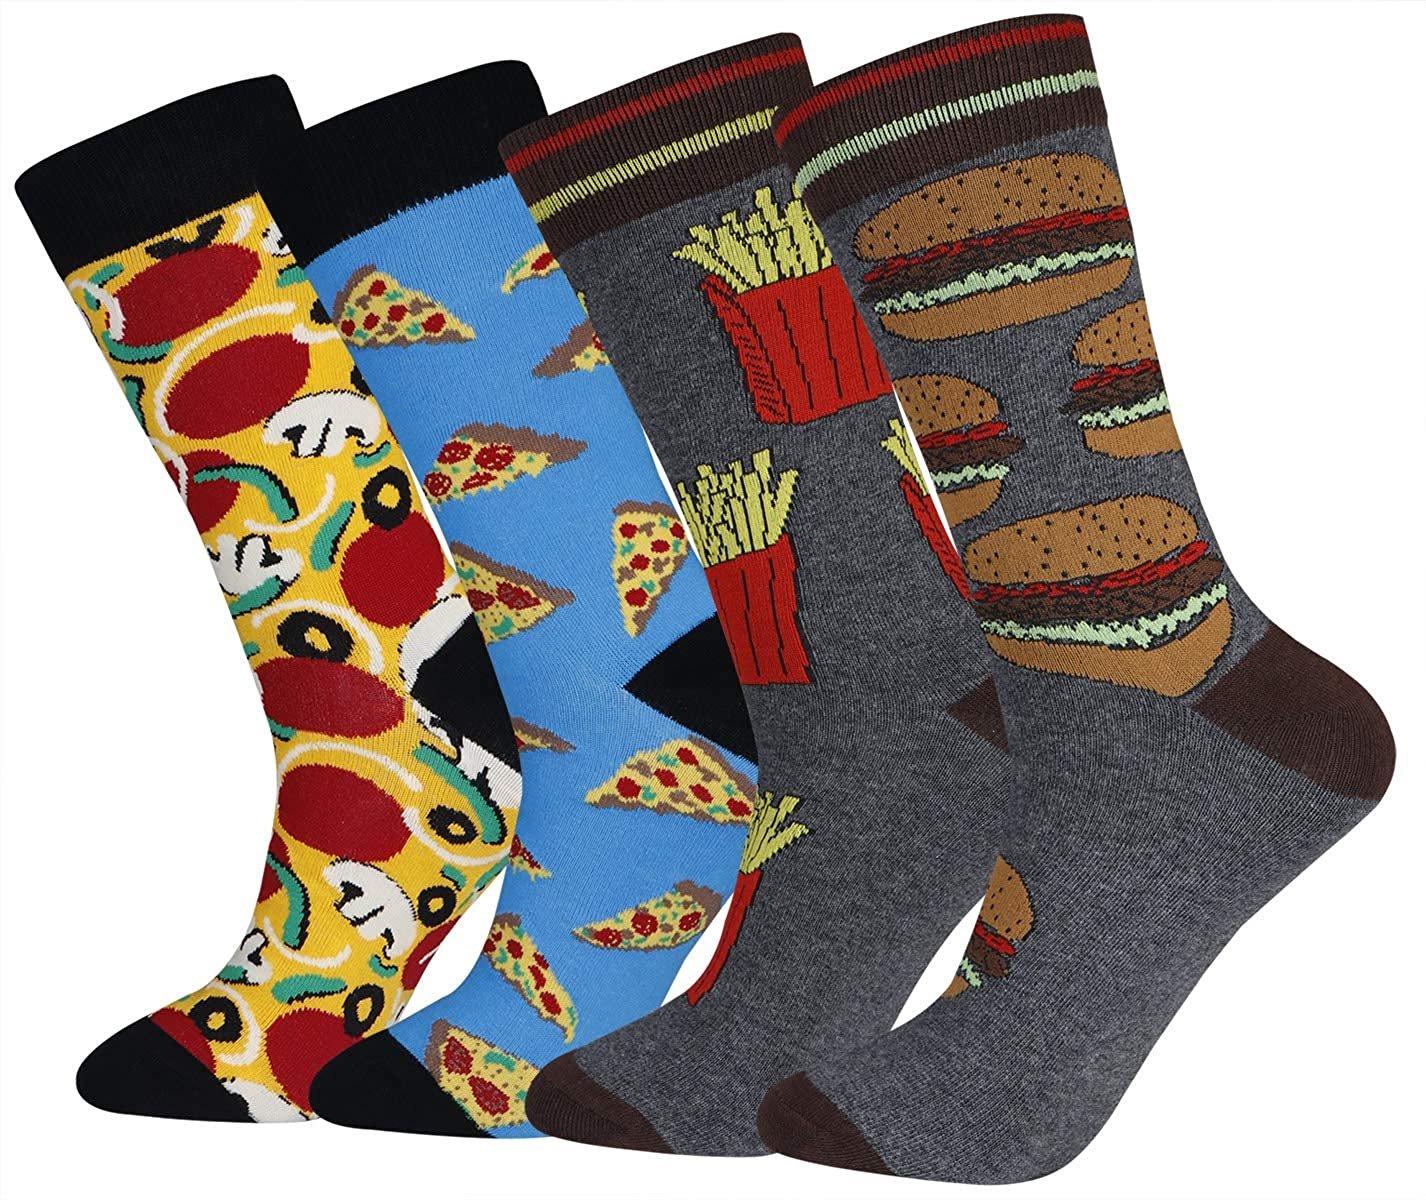 Men's Cool And Colorful Patterned Dress Socks for Men Novelty Animal Crew Socks